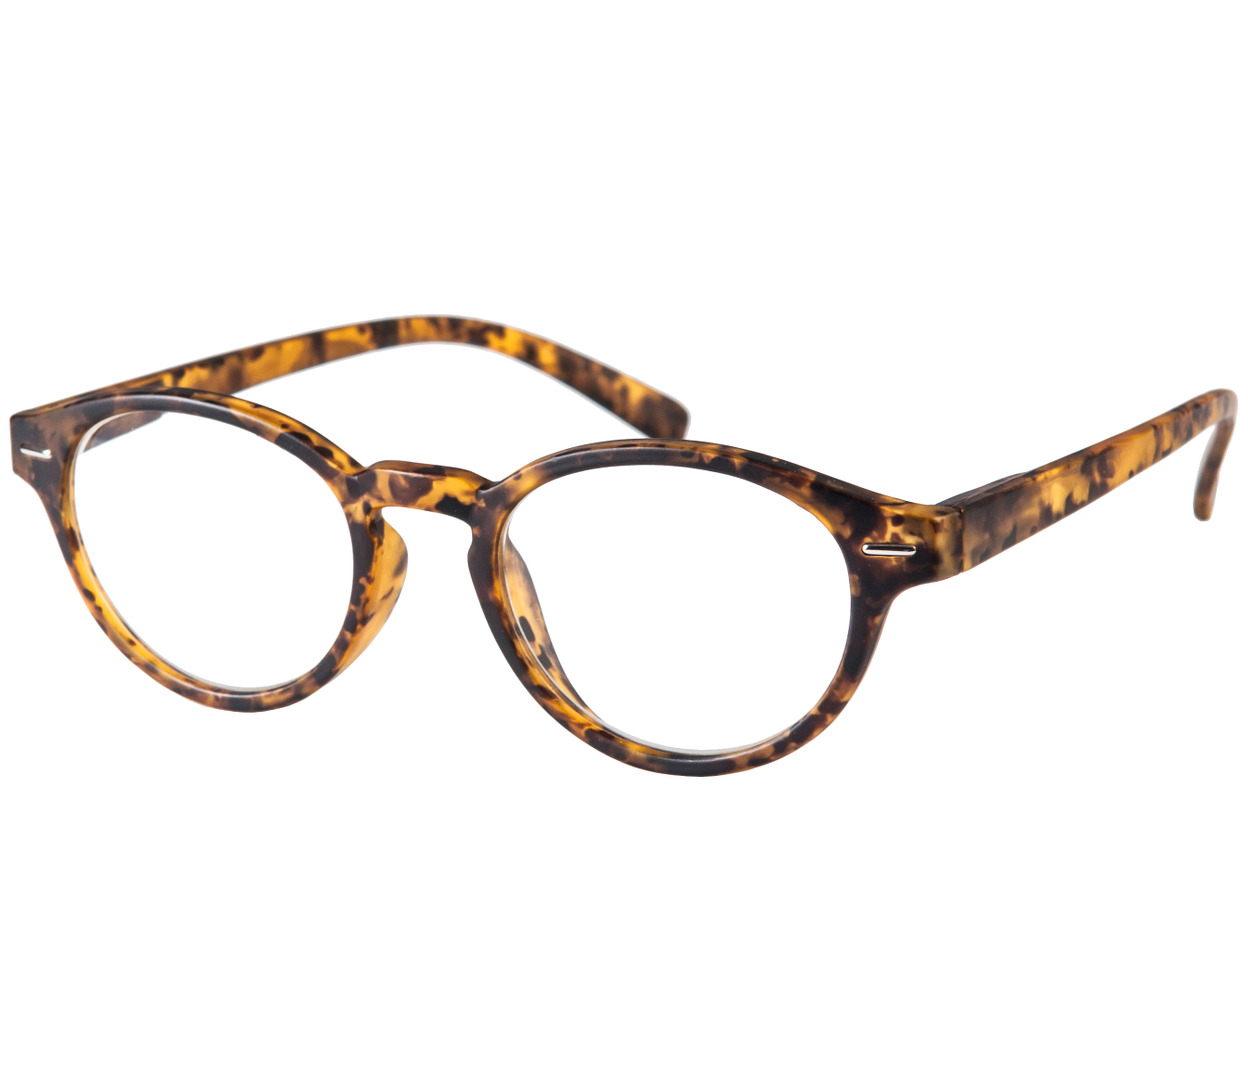 016dcc1006dc Espresso (Tortoiseshell) Retro Reading Glasses - Thumbnail Product Image